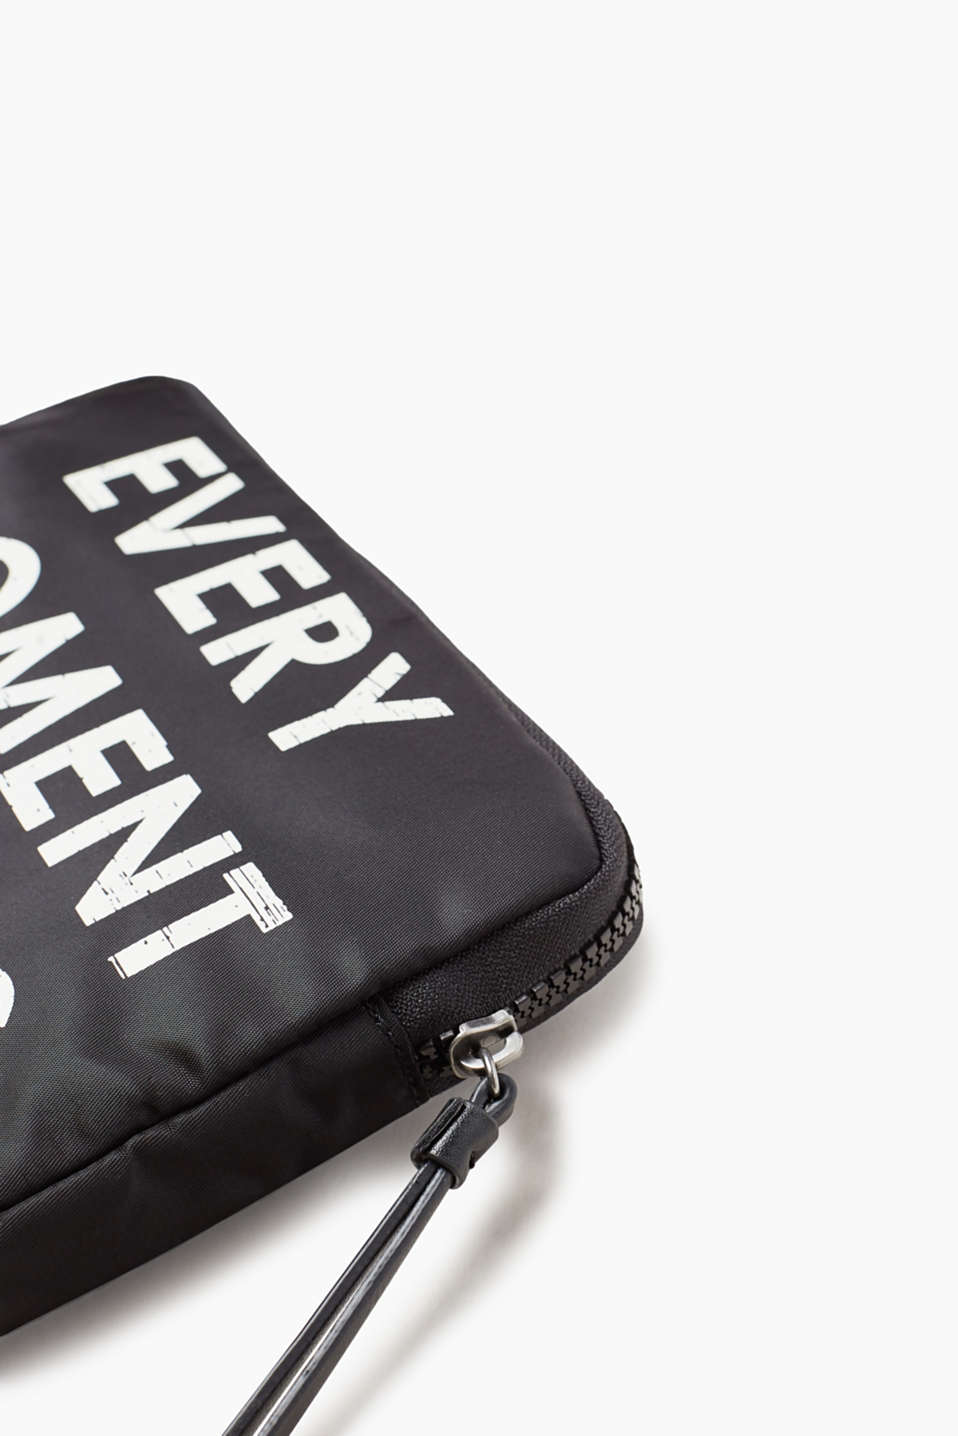 Zip-Pouch mit Statement, aus Nylon